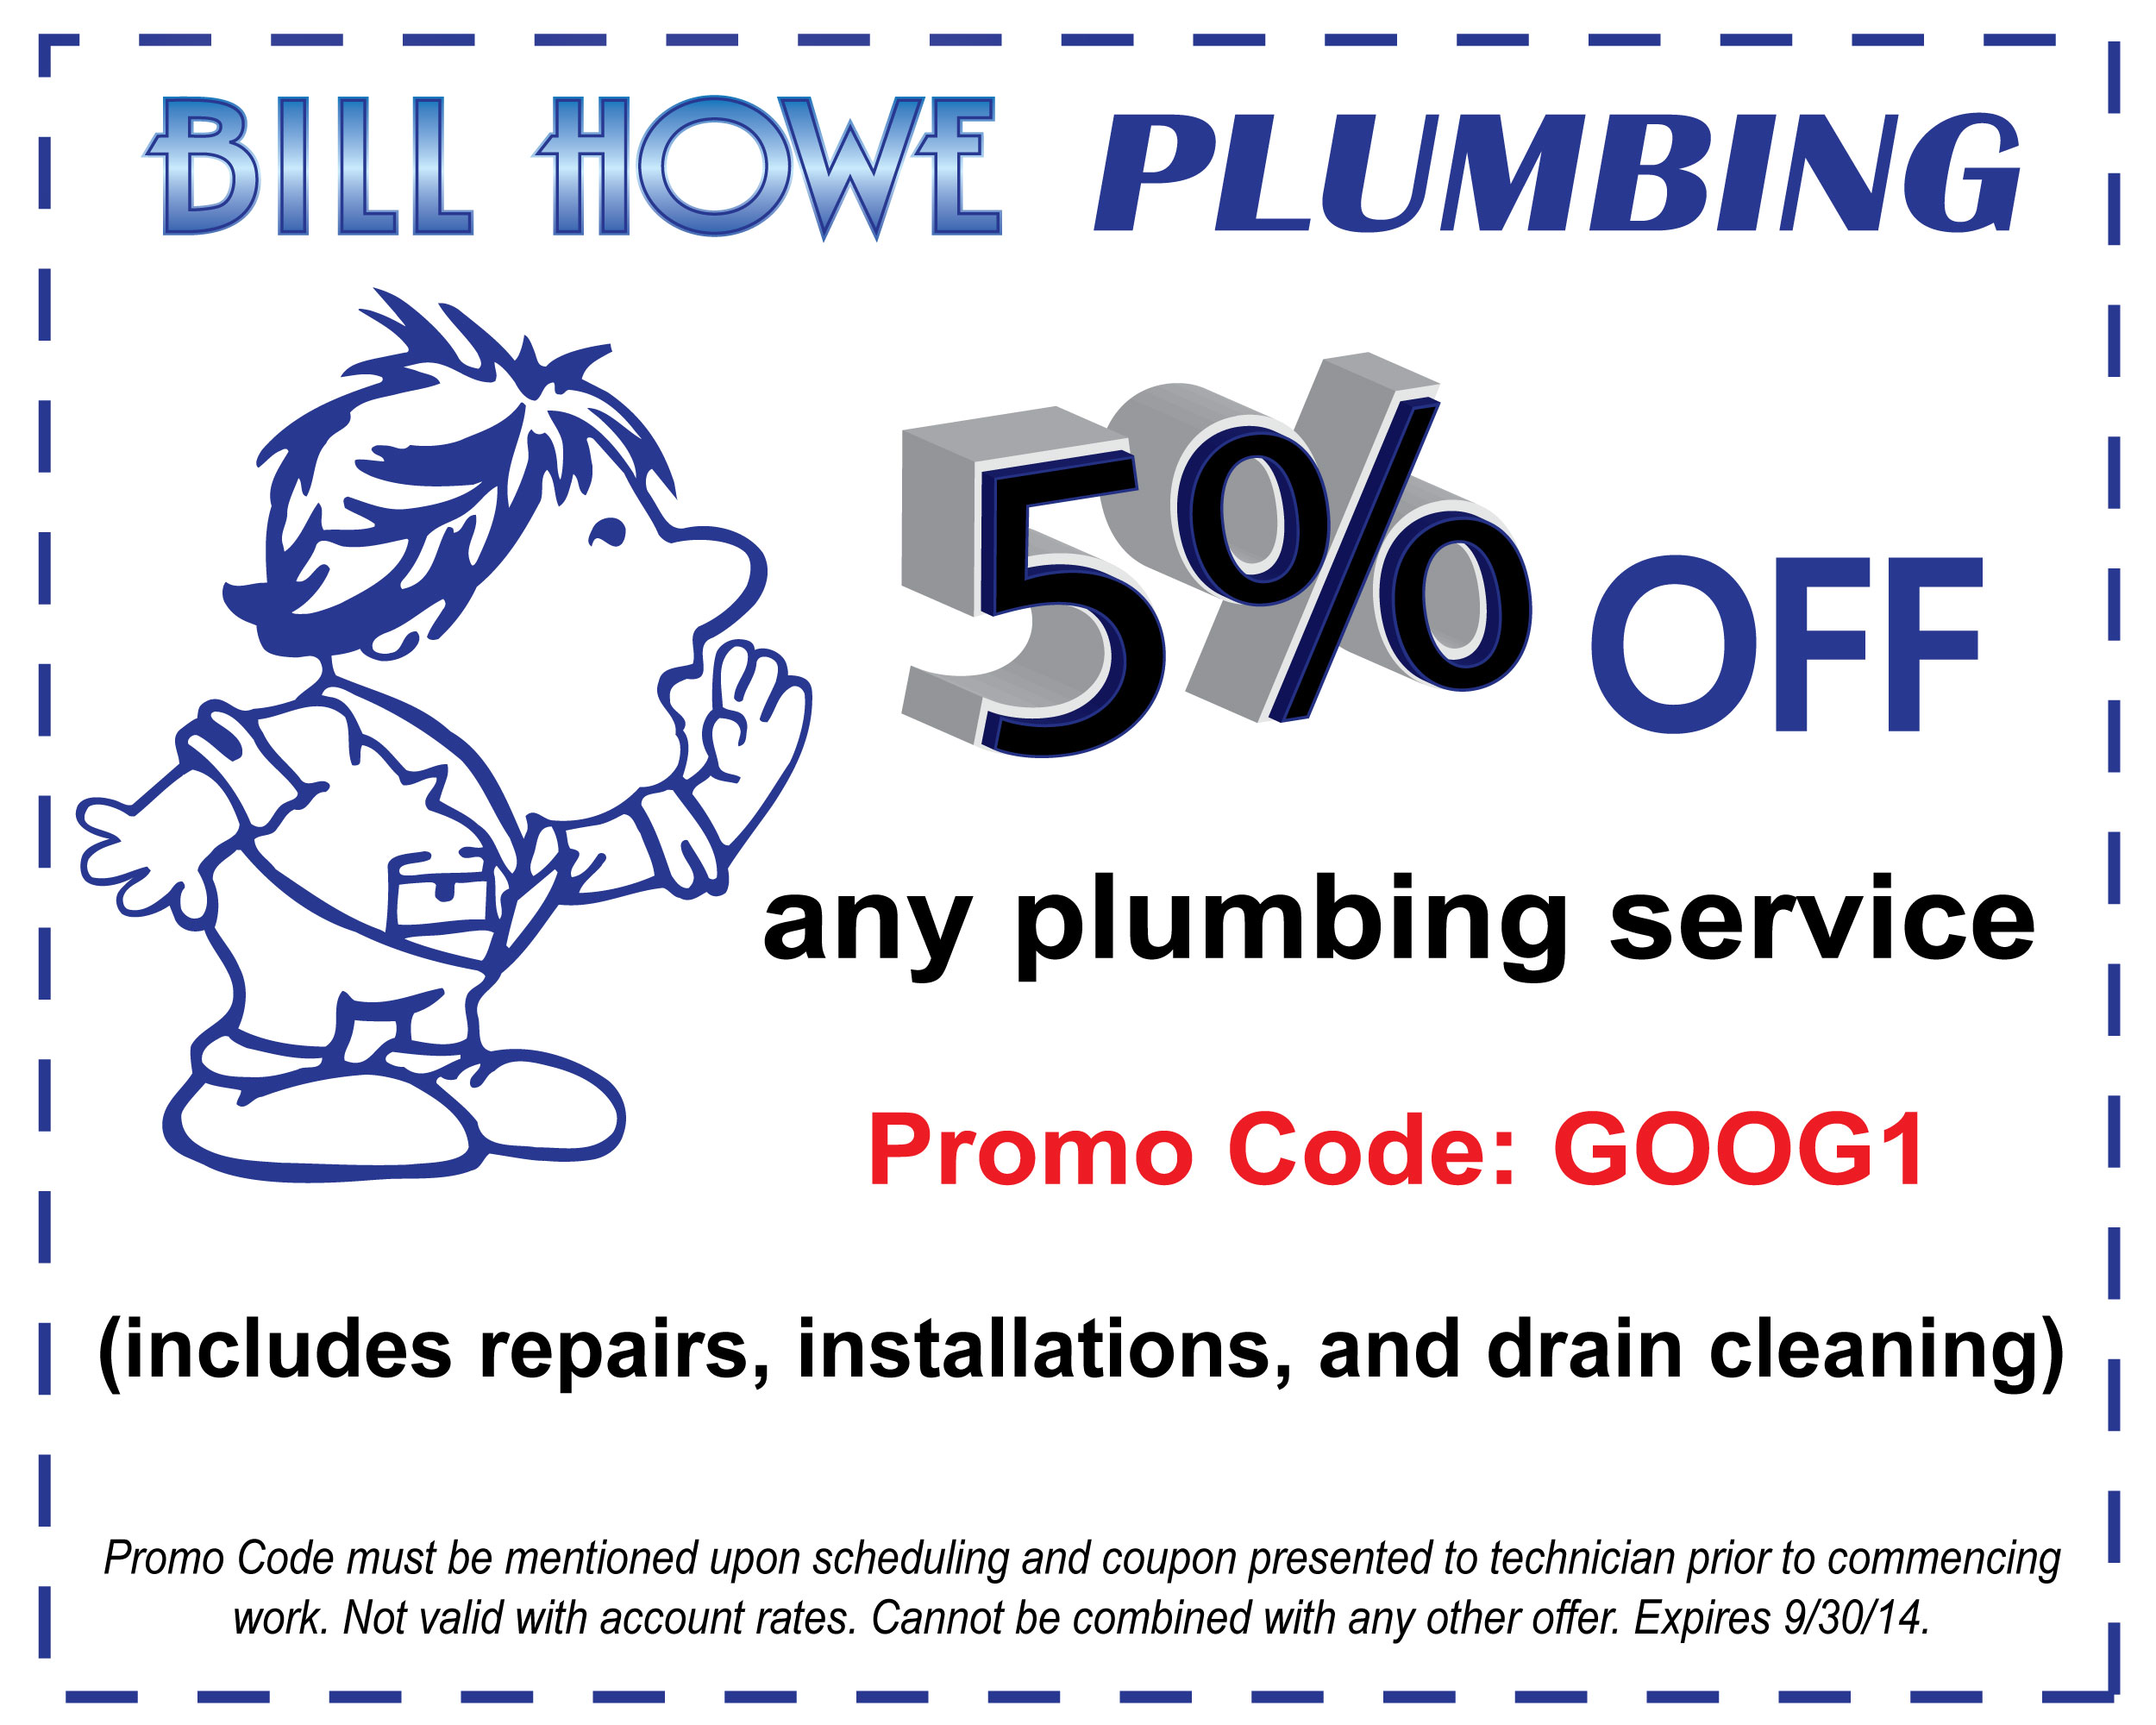 howe bill plumbing youtube jingle watch